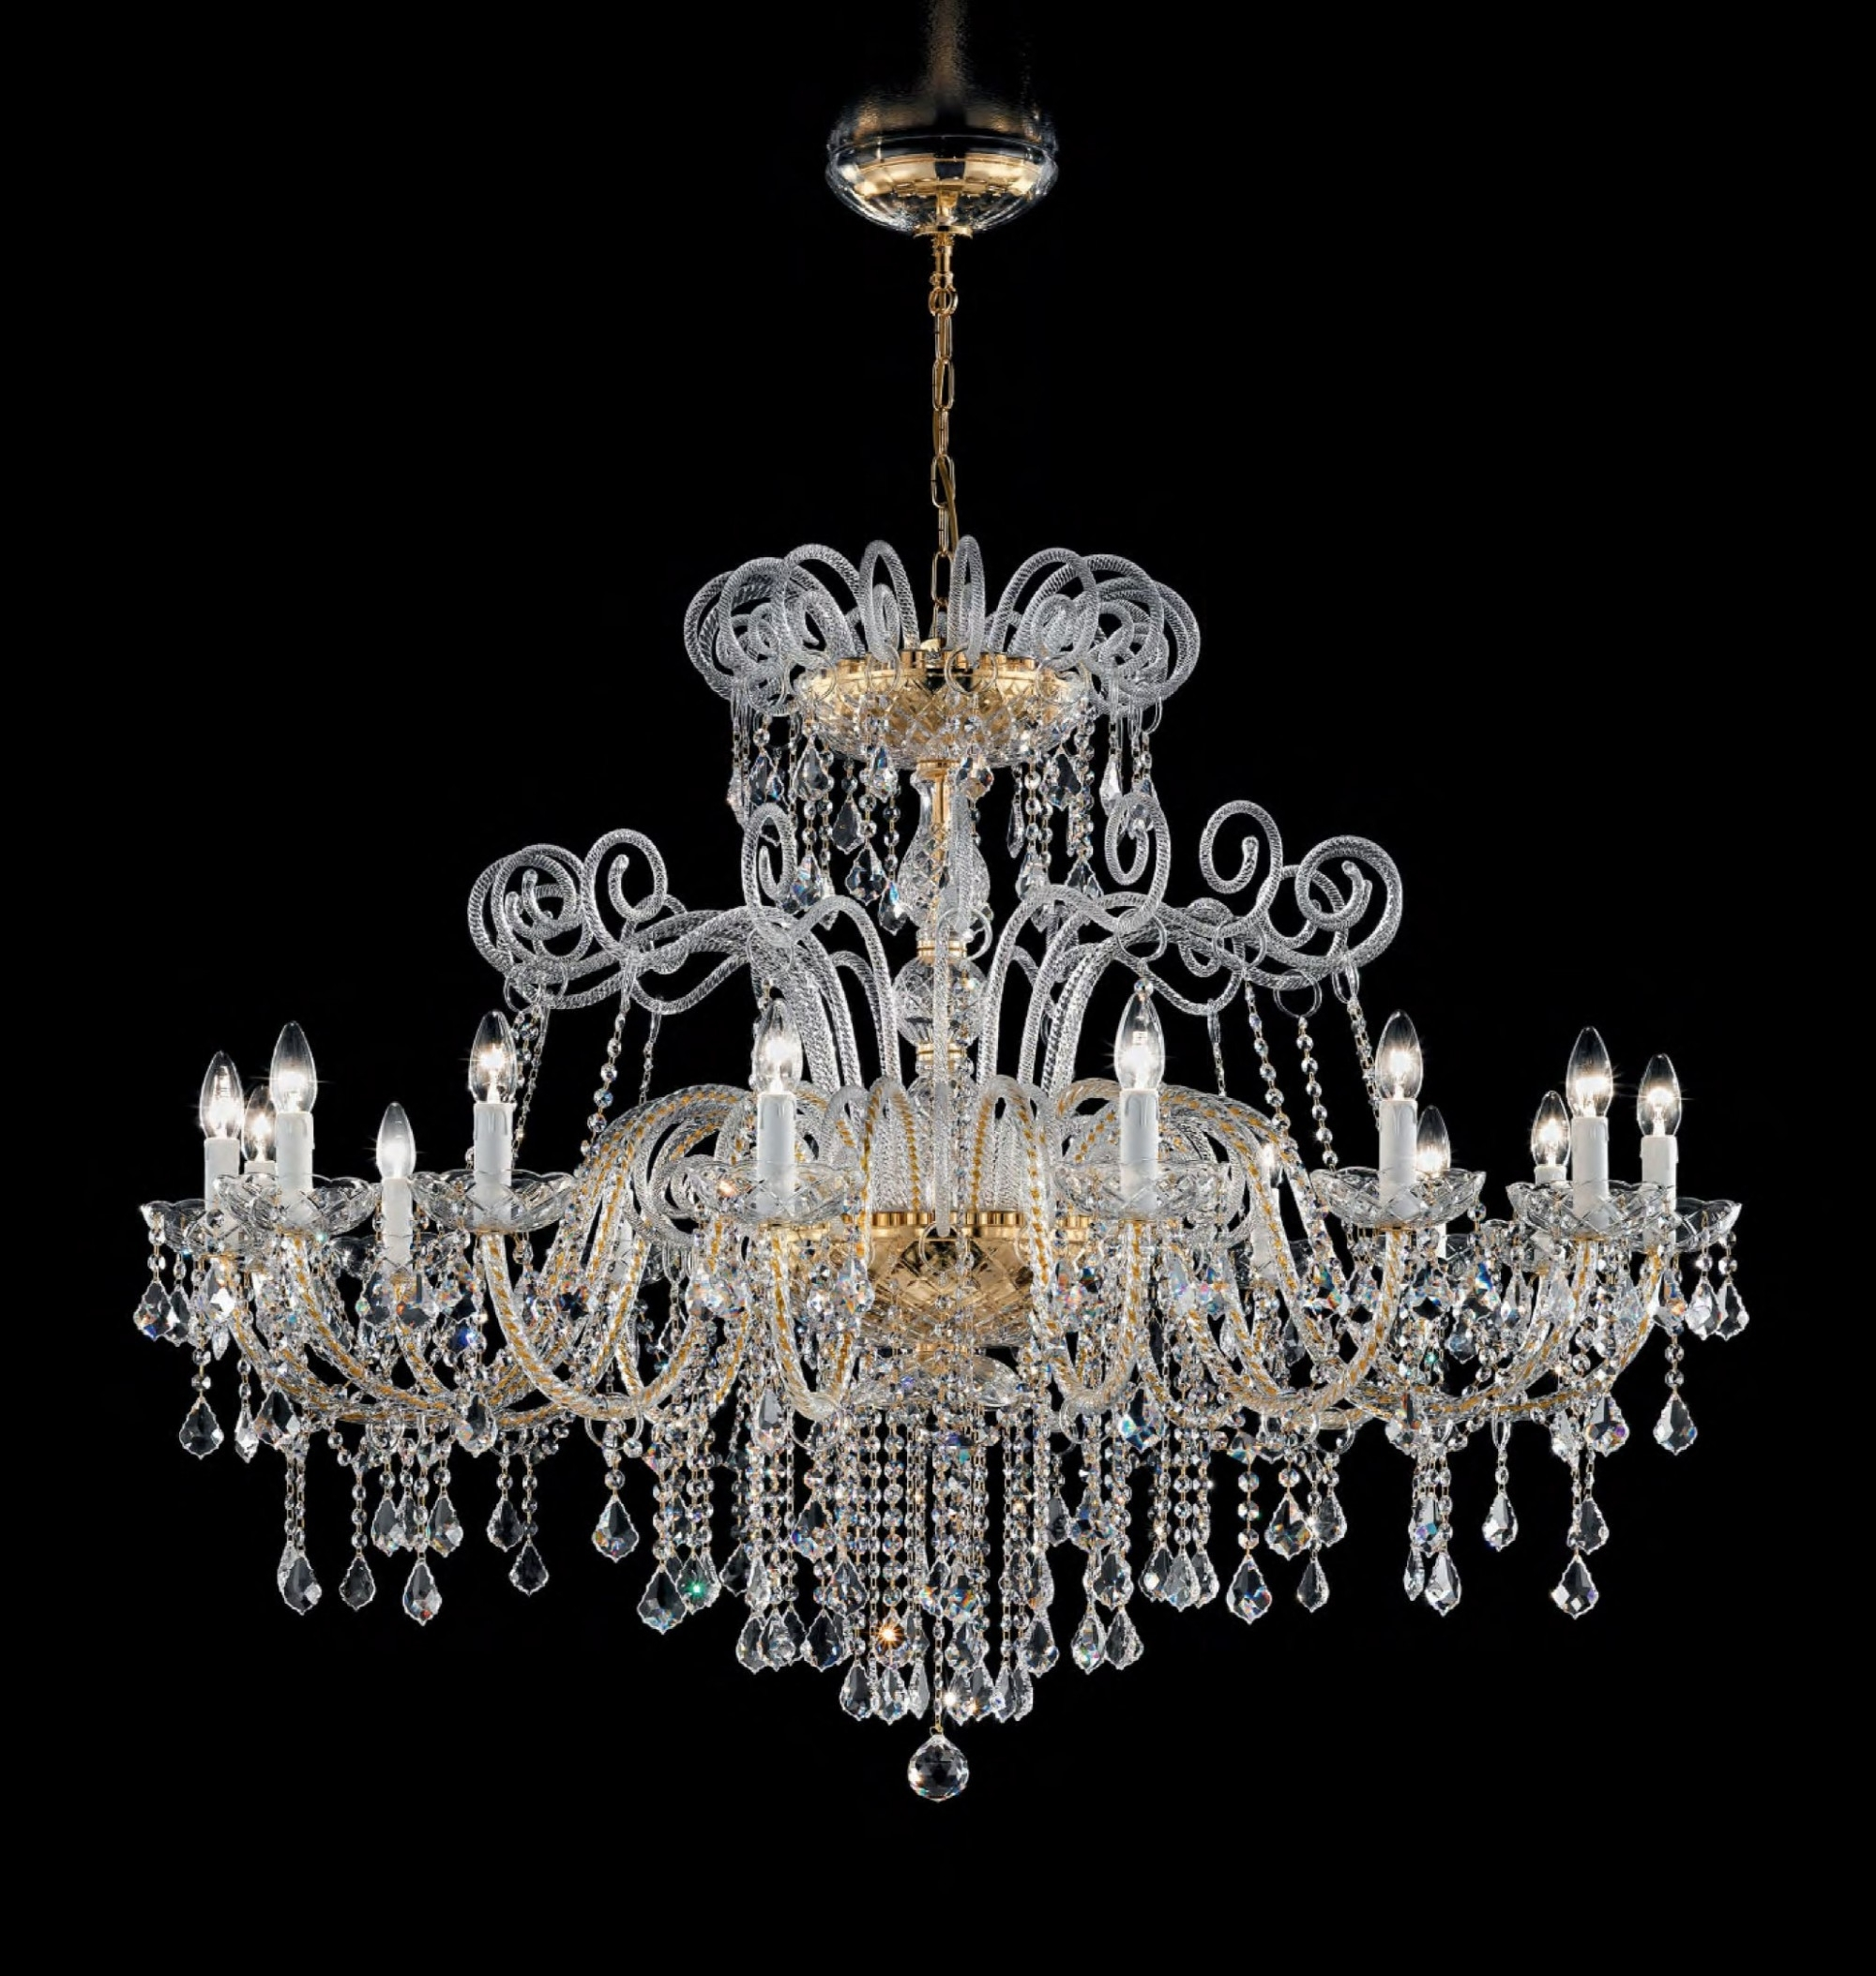 Antique Style Murano Glass Swarovski Crystals Chandelier Syl948K16 In Recent Antique Style Chandeliers (View 7 of 15)